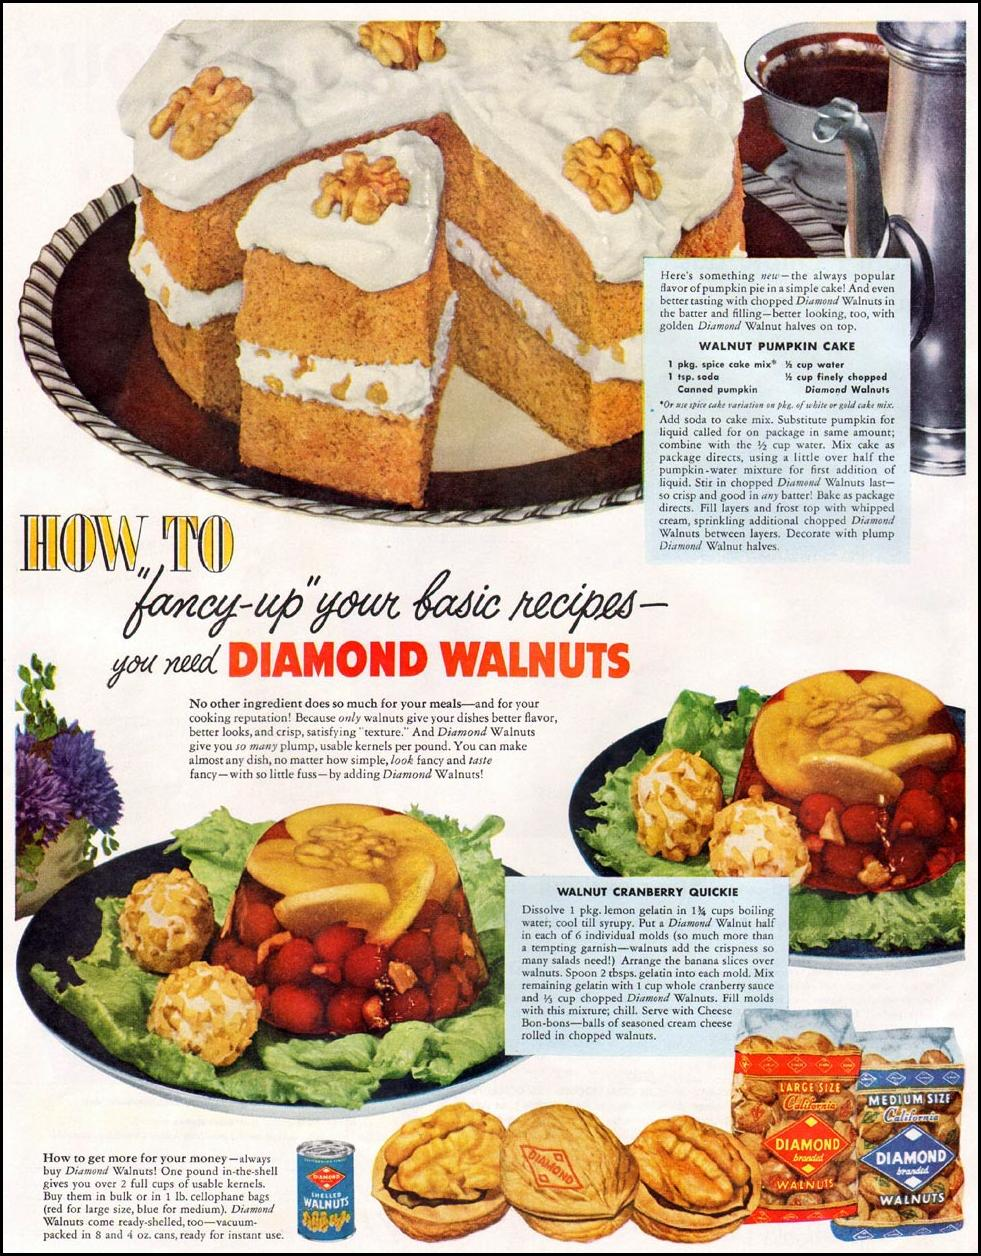 DIAMOND BRAND WALNUTS WOMAN'S HOME COMPANION 12/01/1952 p. 56